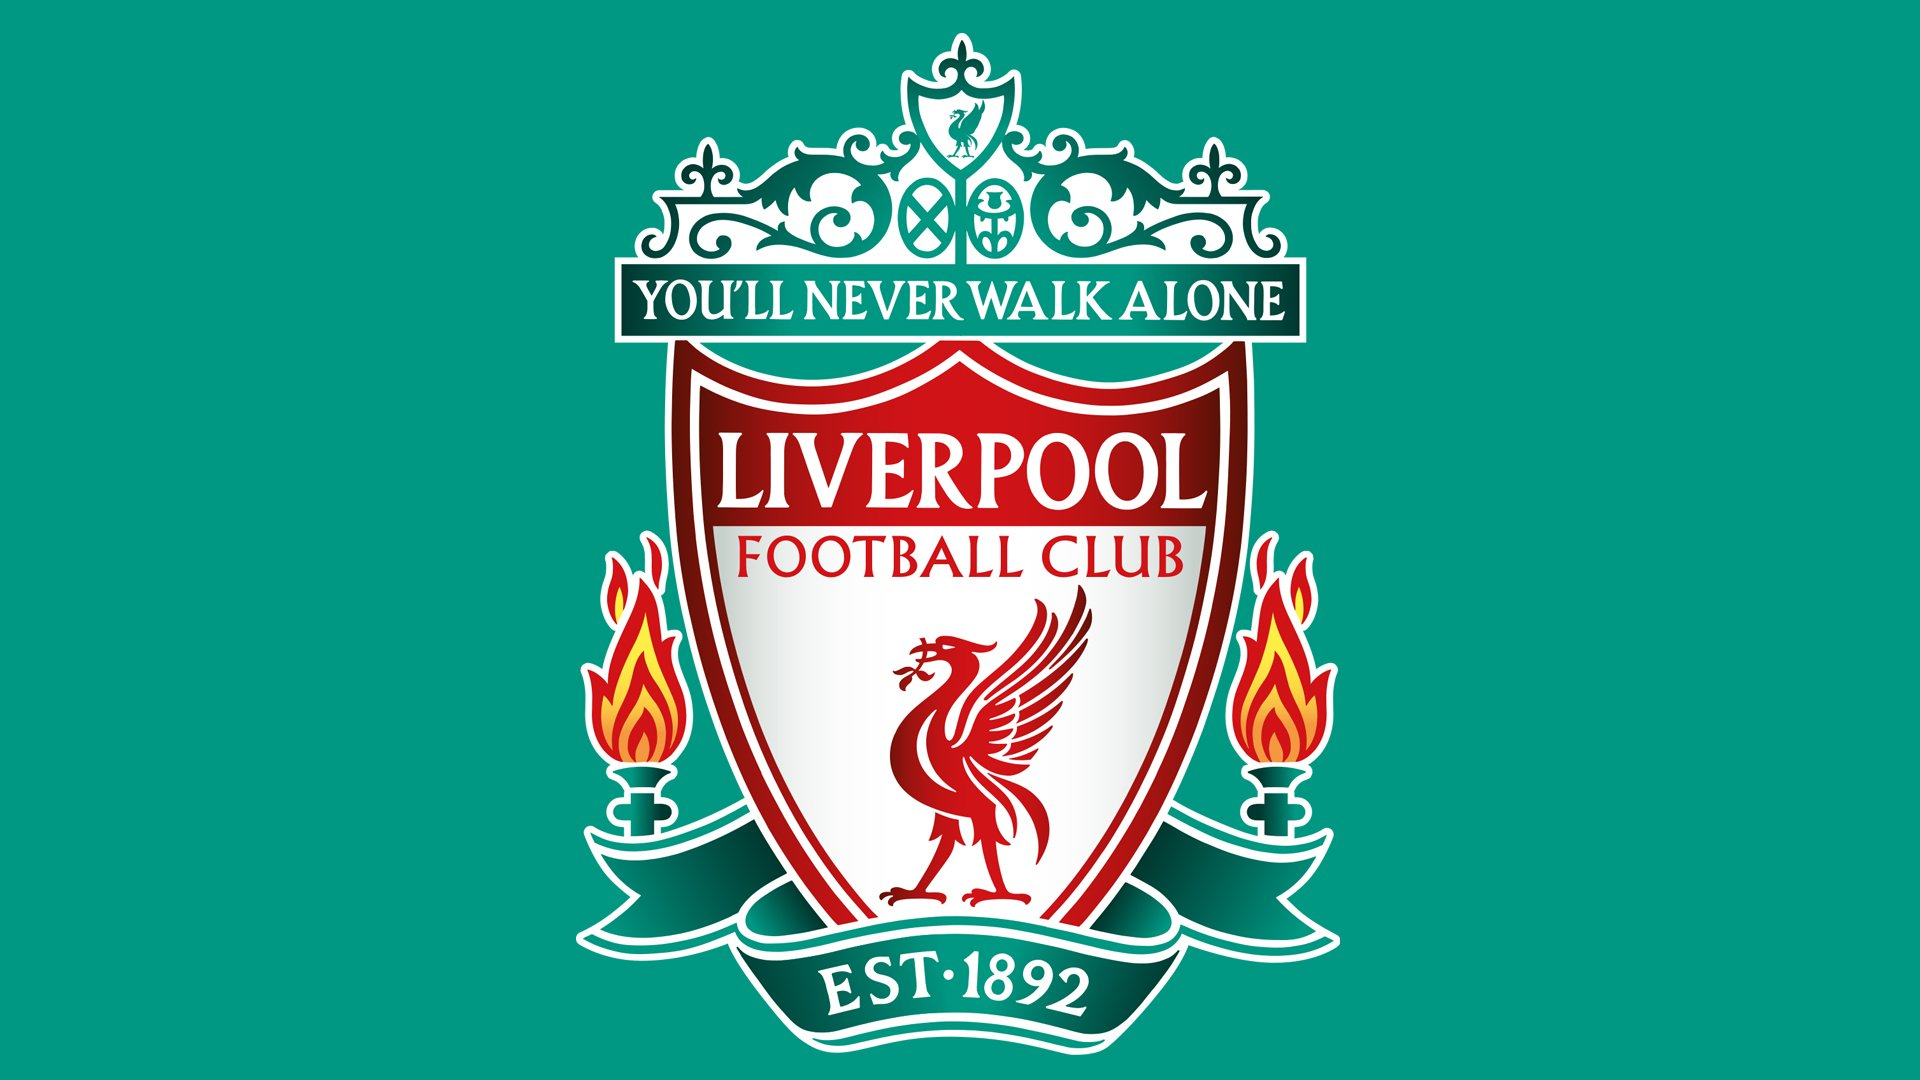 Liverpool: Liverpool Logo, Liverpool Symbol, Meaning, History And